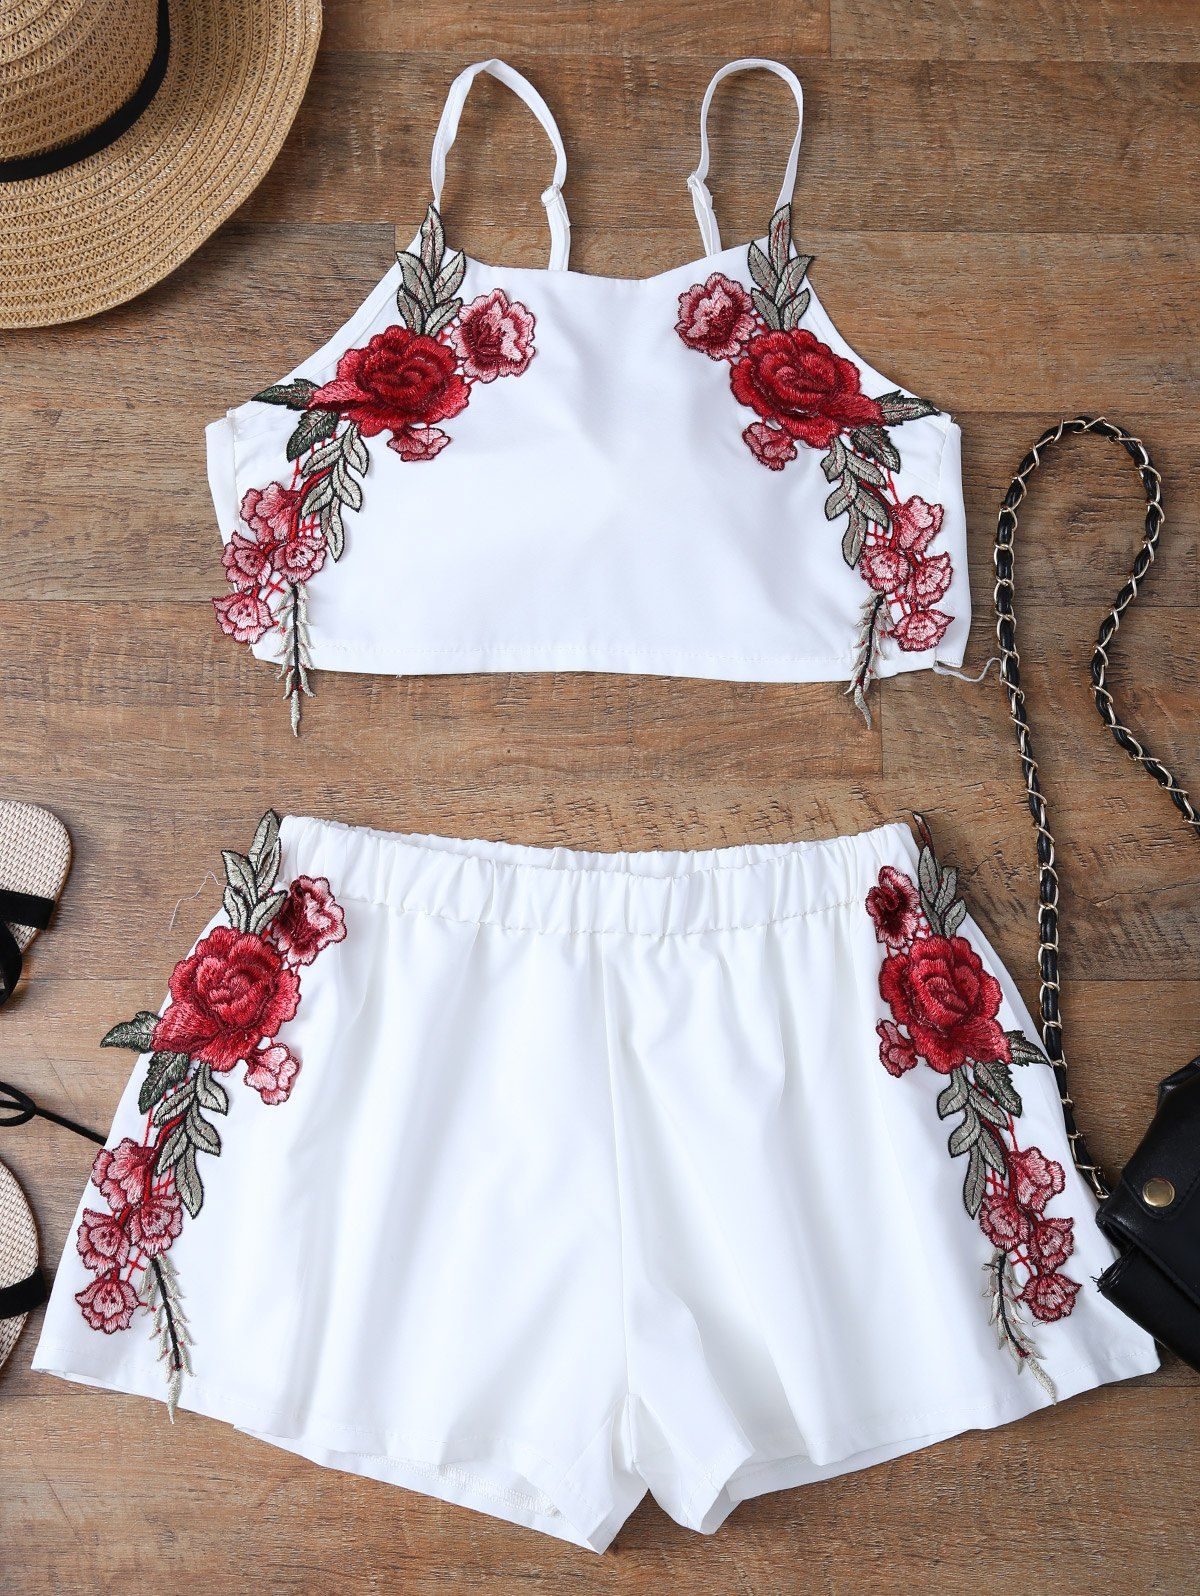 92bf183548bdf $17.66 Embroidered Bowknot Top With Shorts WHITE: Two-Piece Outfits | ZAFUL